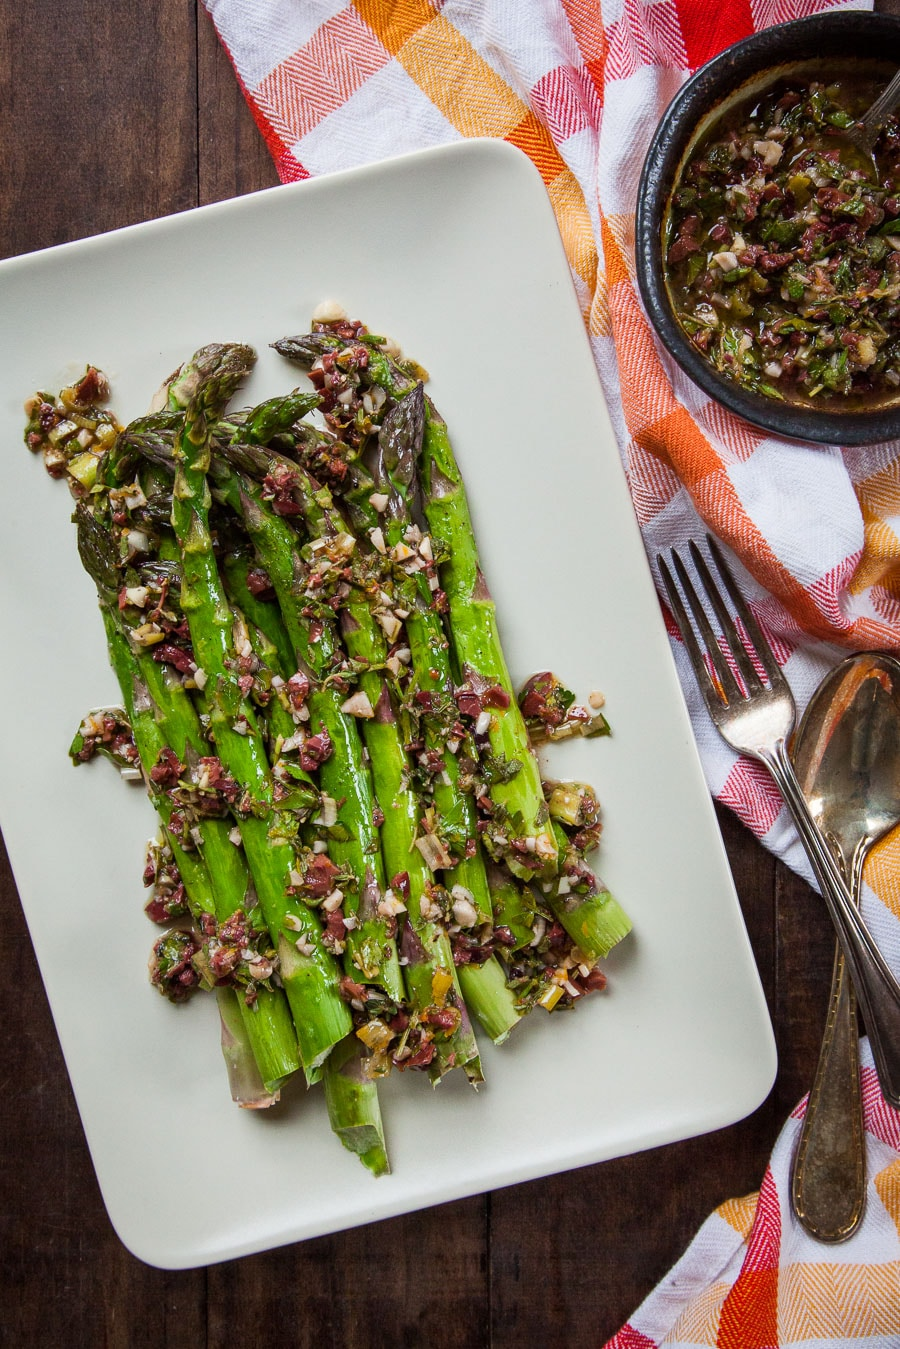 Roasted Asparagus with Olive and Herb Dressing. An easy and fast vegetable side dish. Photo and recipe by Irvin Lin of Eat the Love.